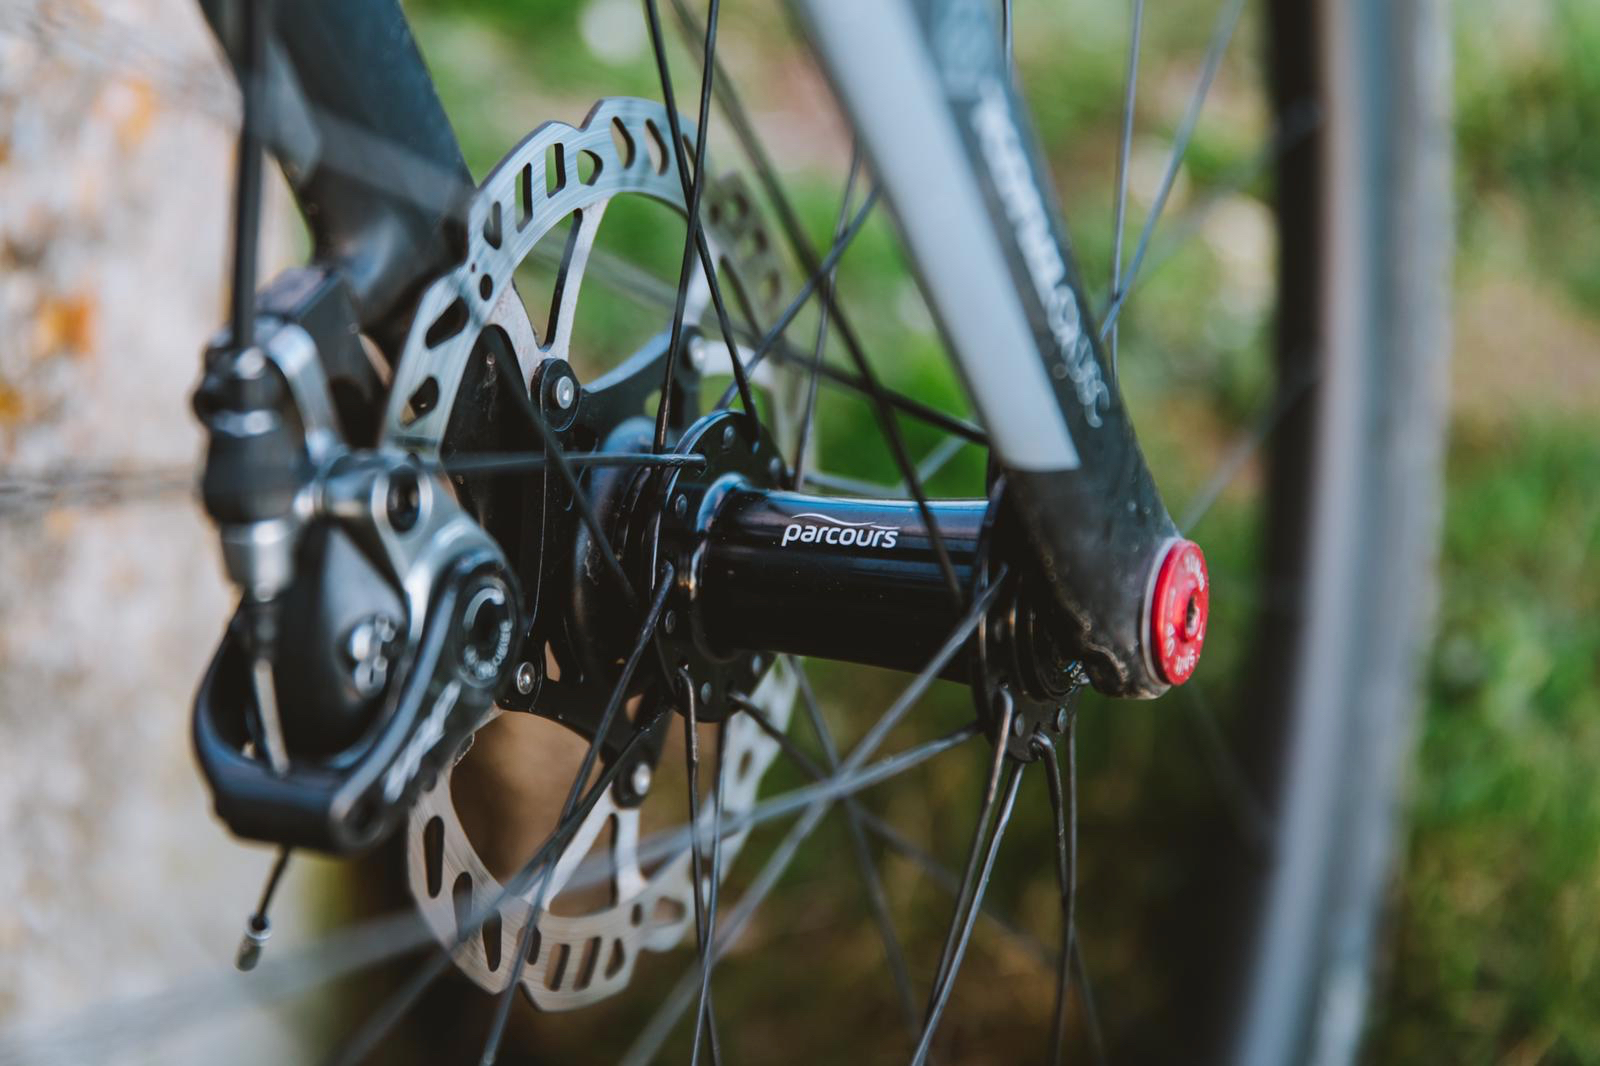 Parcours Alta Wheel Set Review - Tim Wiggins